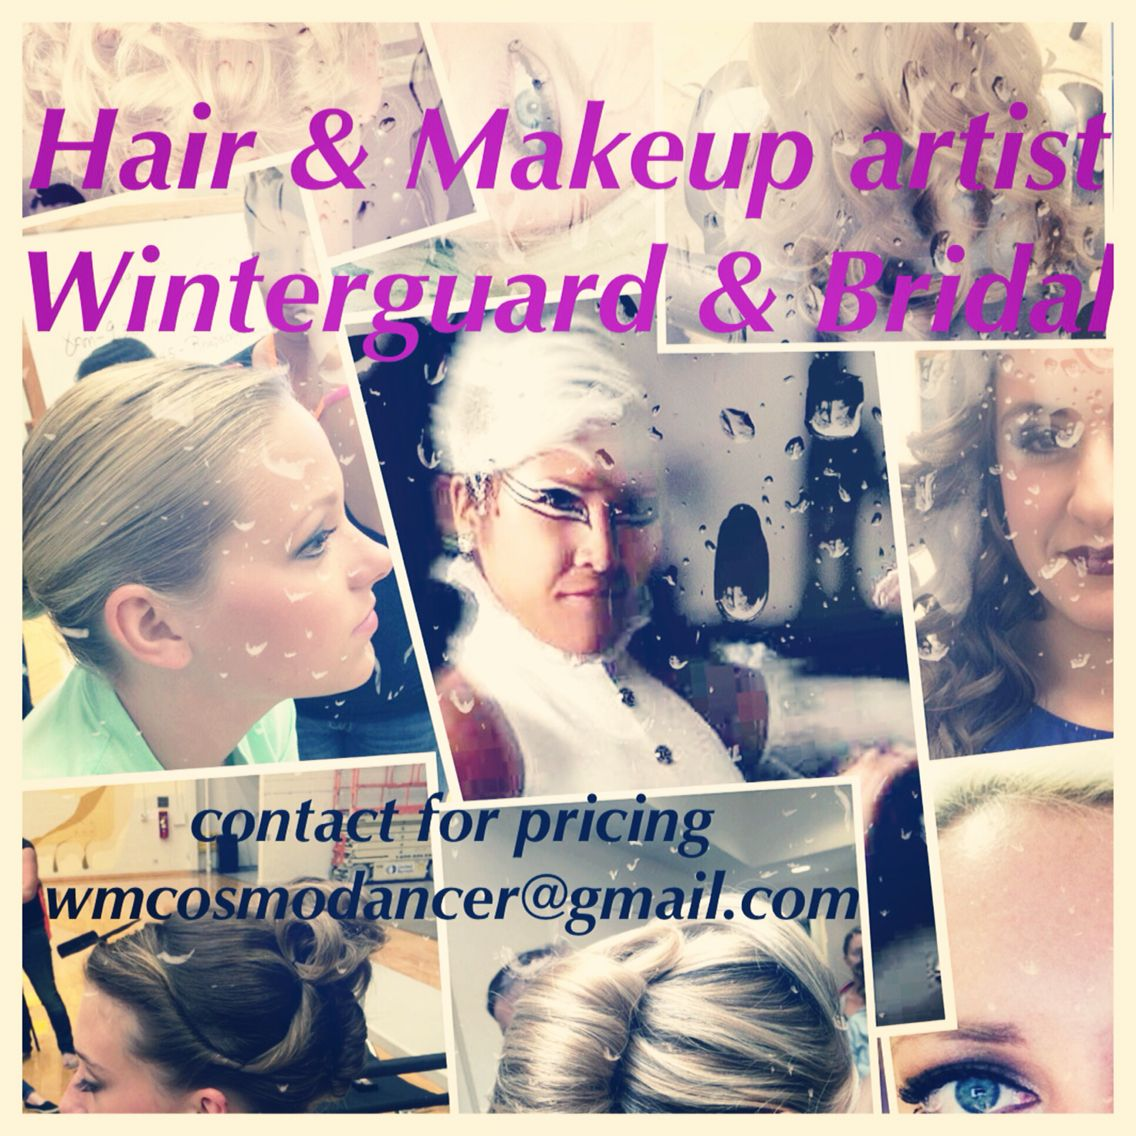 Freelance hair and makeup artist located in Indianapolis